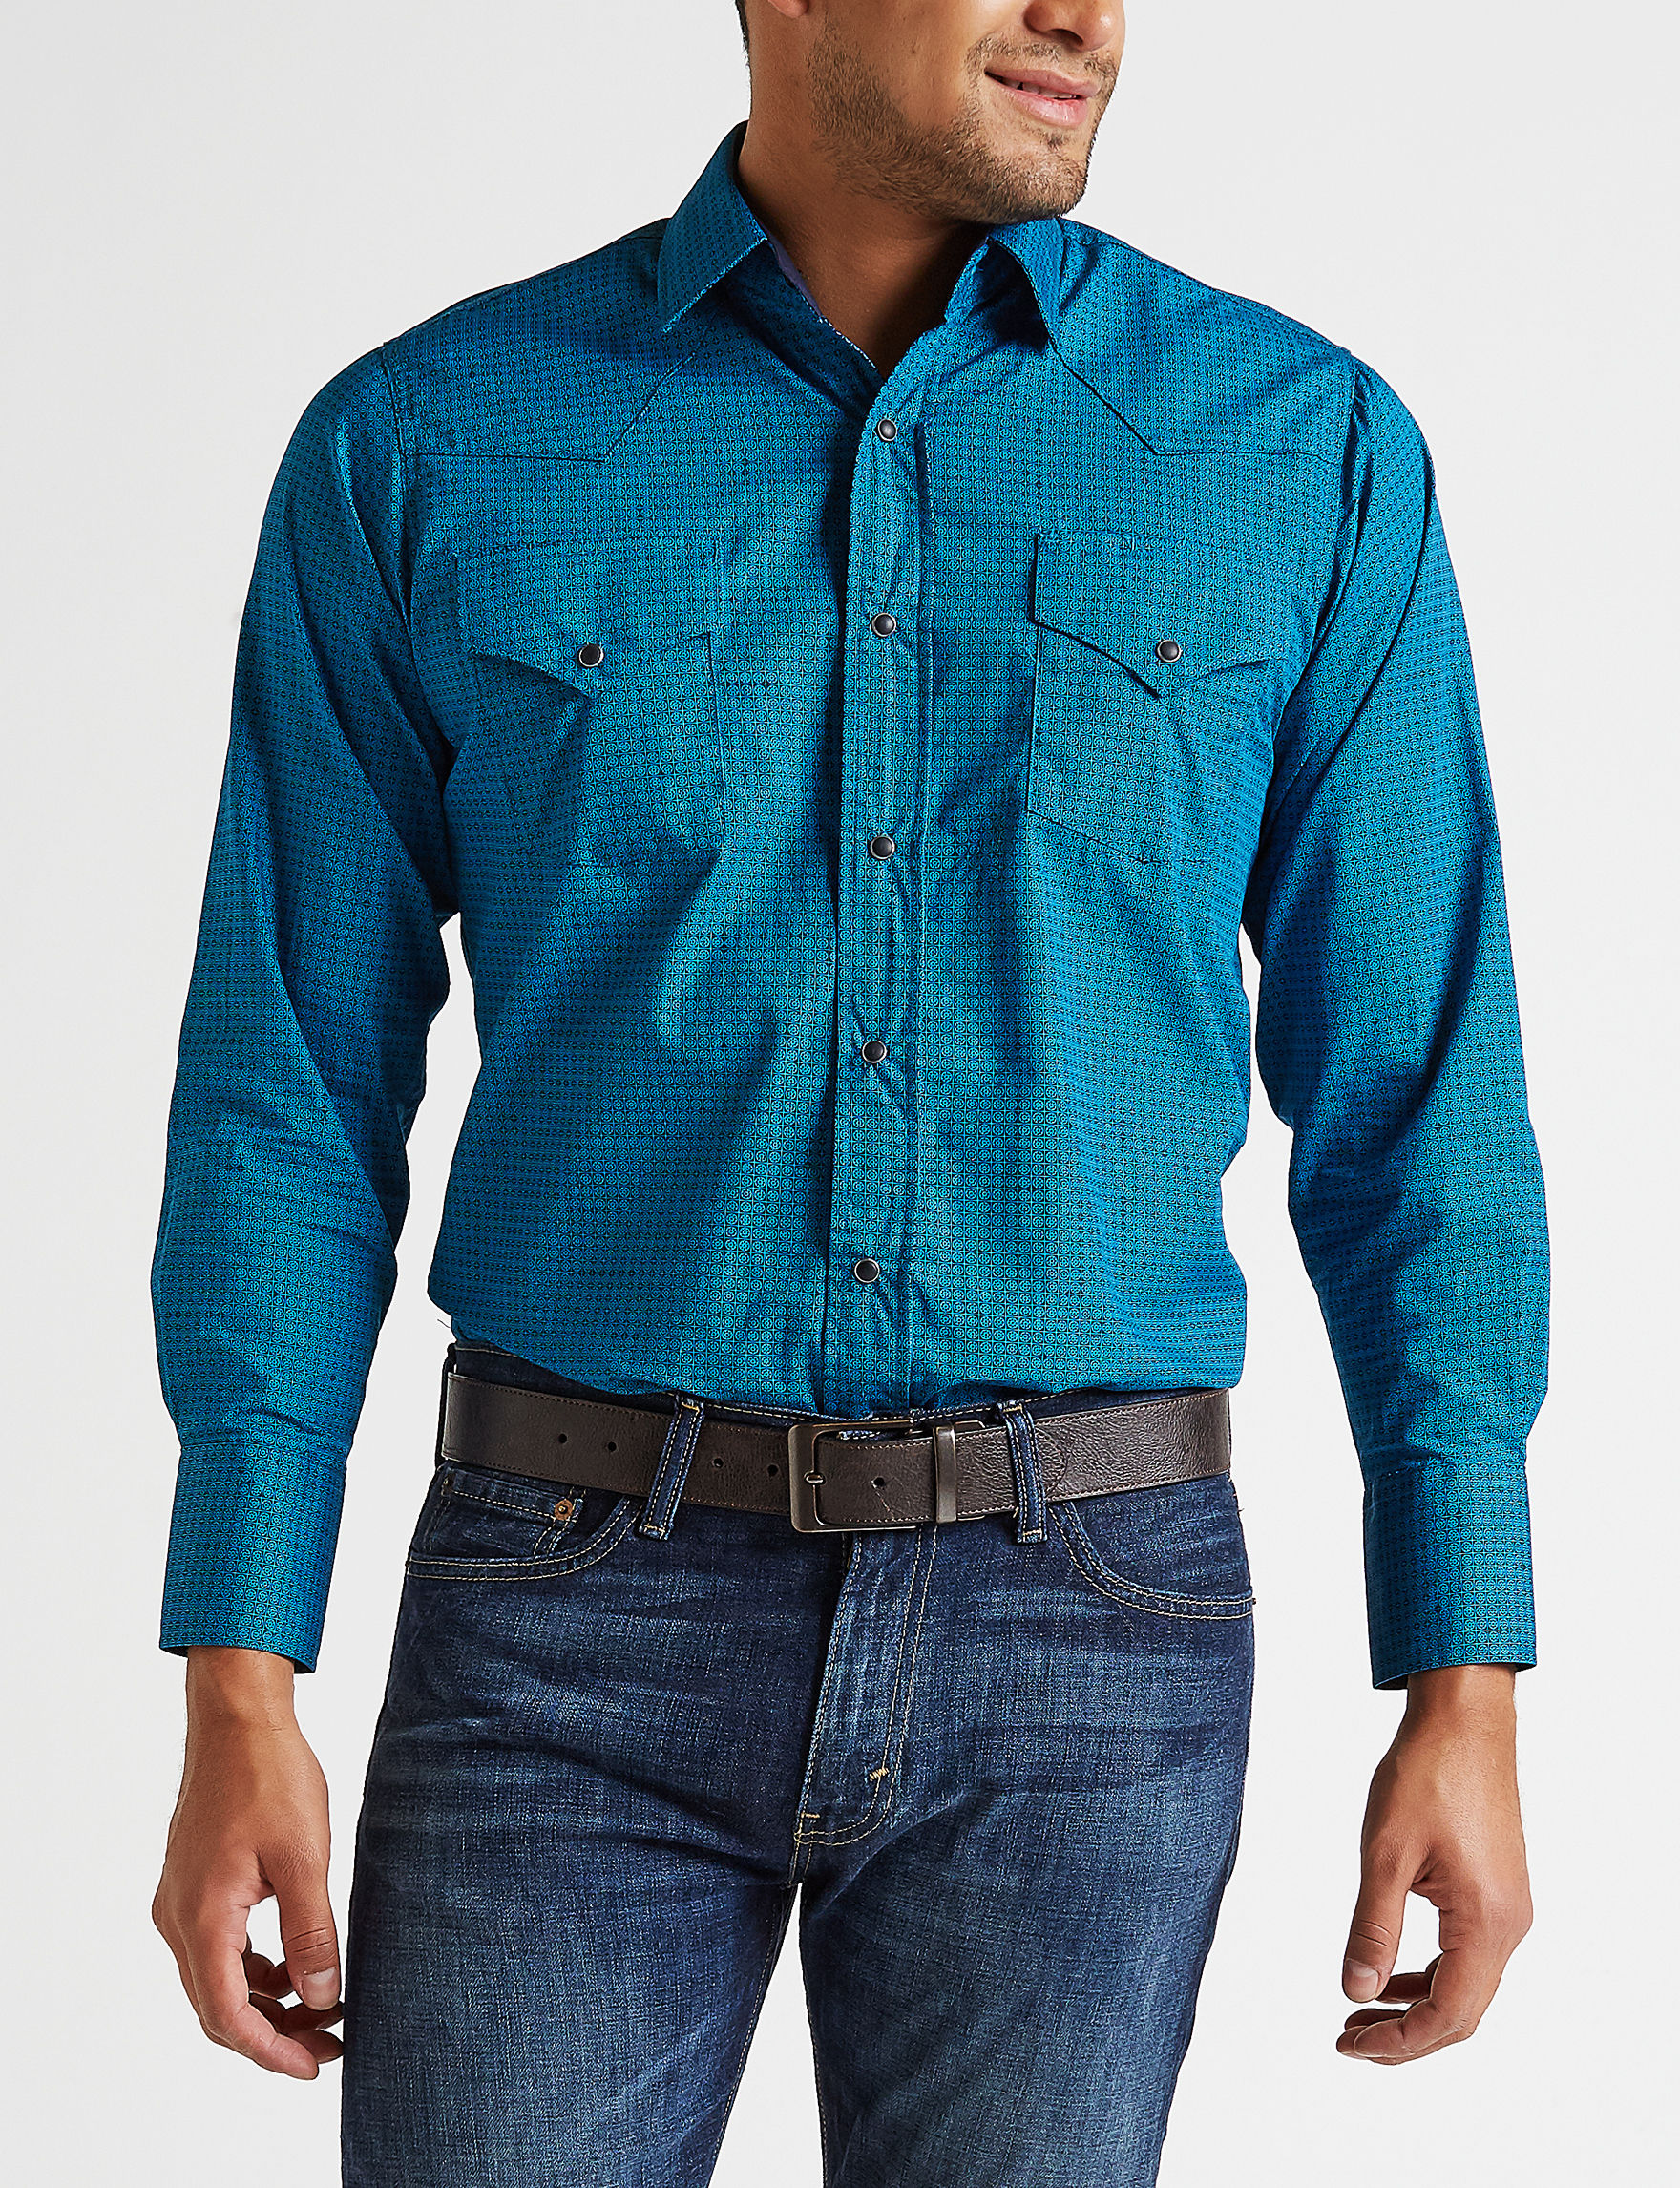 Ely Cattleman Turquoise Casual Button Down Shirts